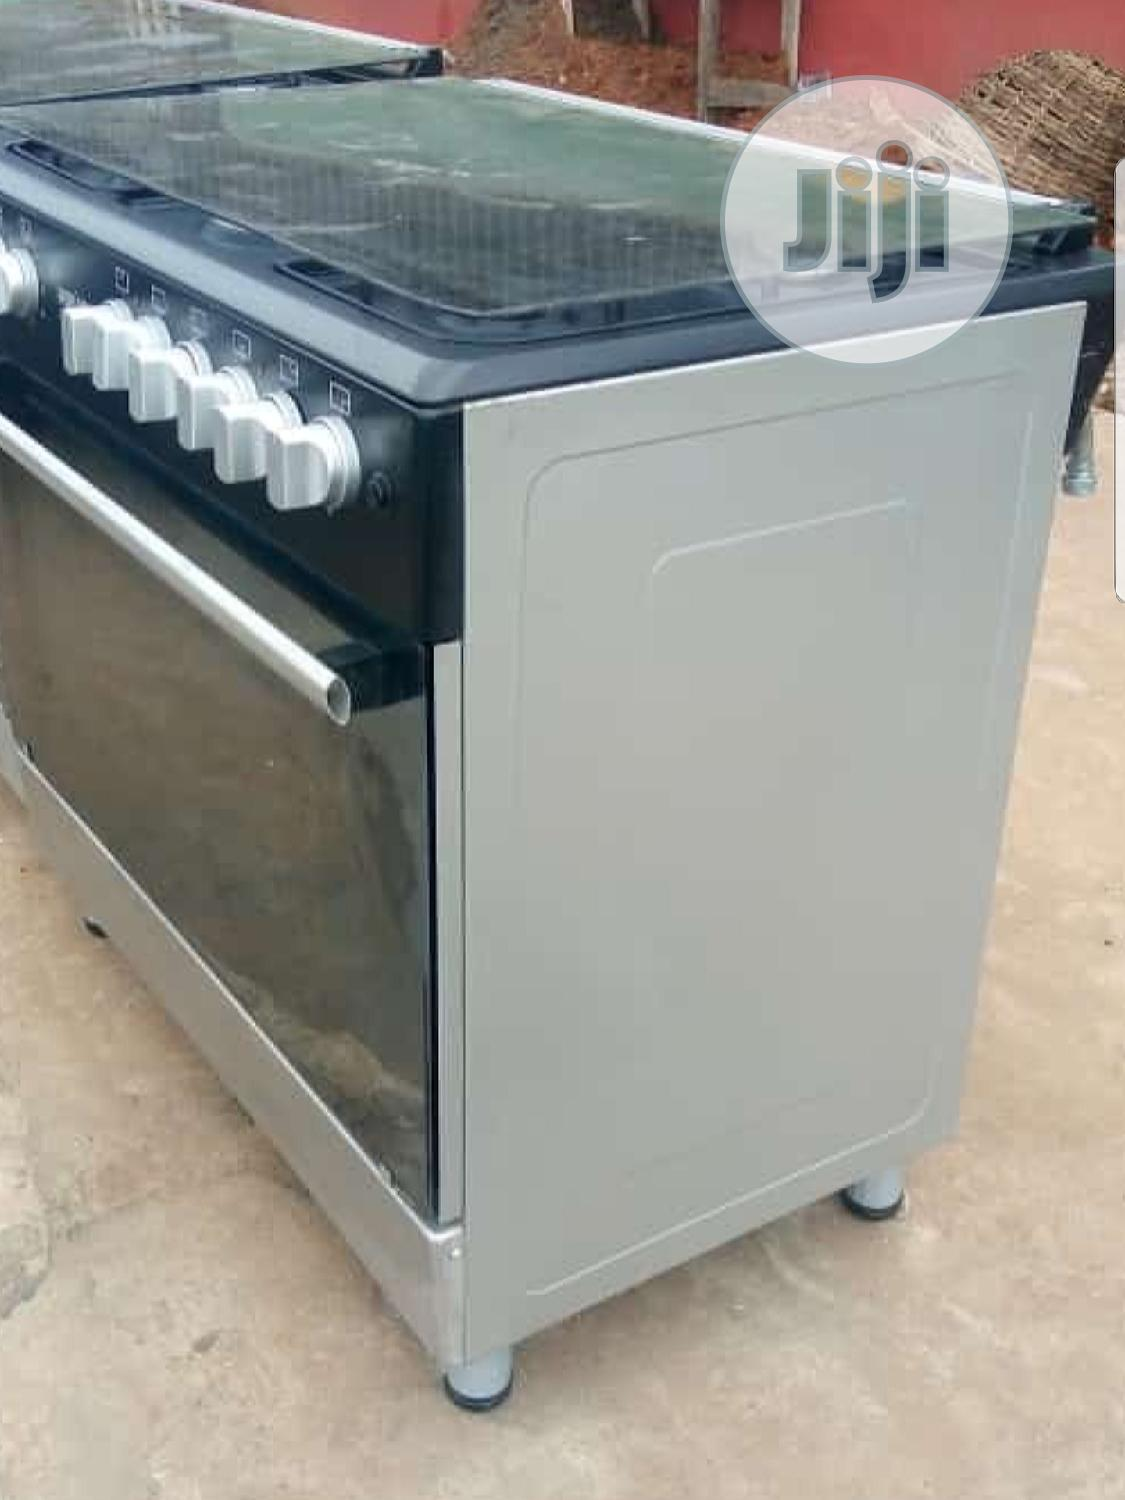 2 Electric And 4 Burner Gas Cooker With Large Oven   Kitchen Appliances for sale in Yaba, Lagos State, Nigeria